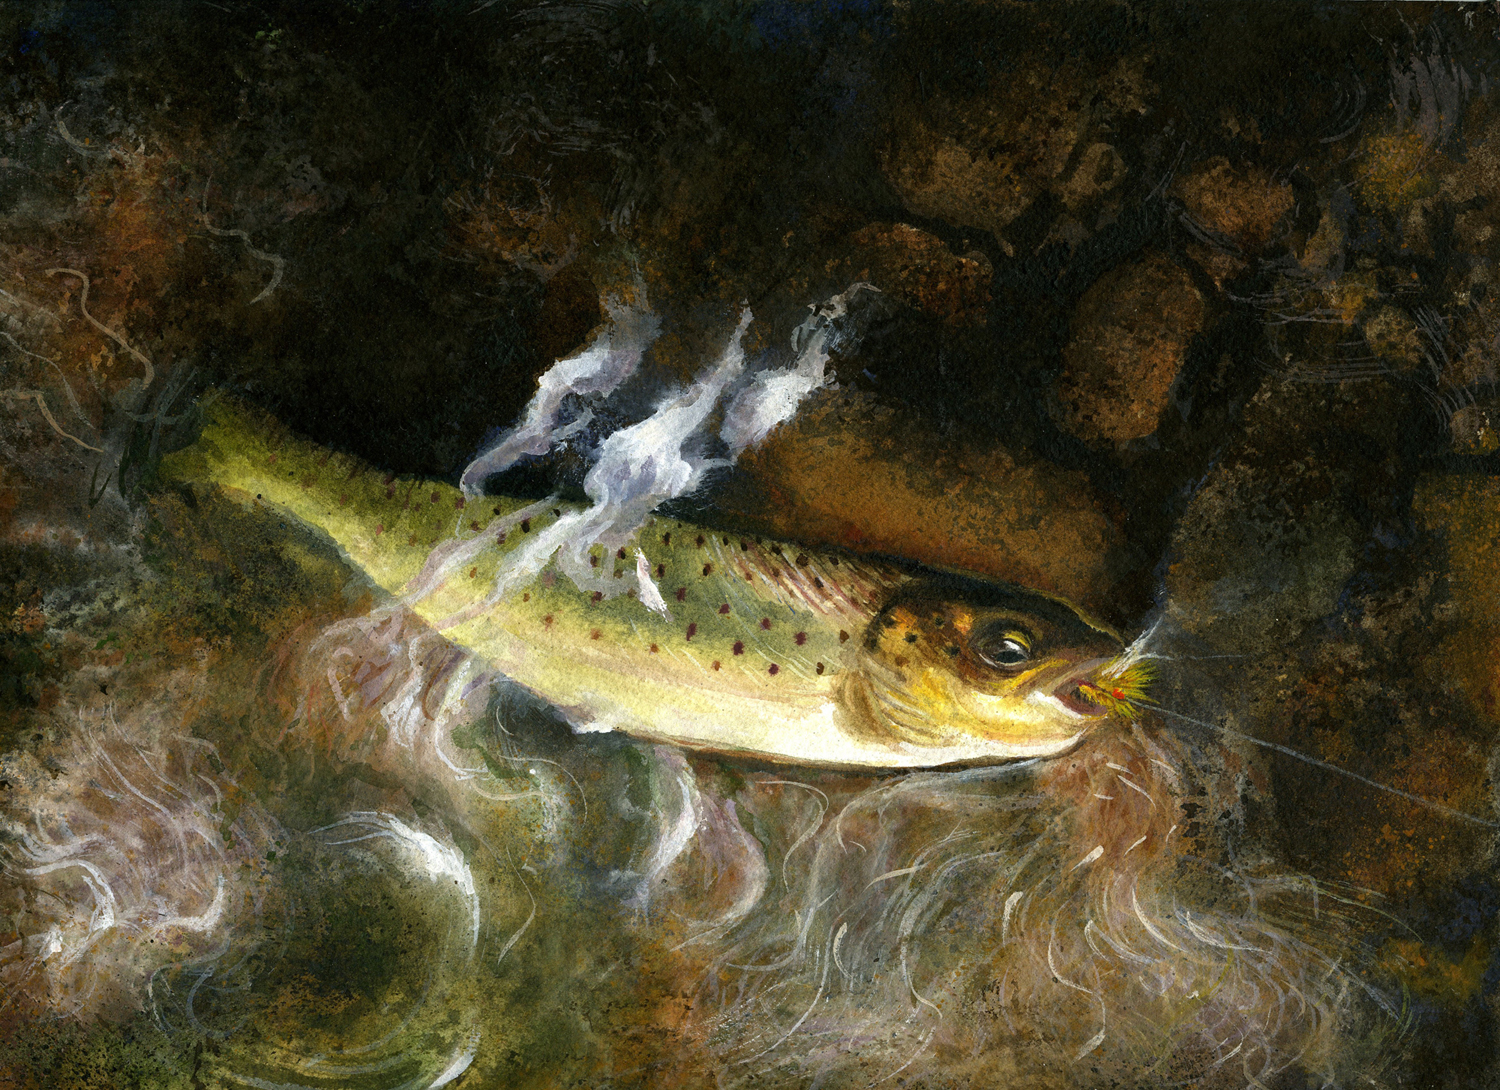 Brook Trout300dpi